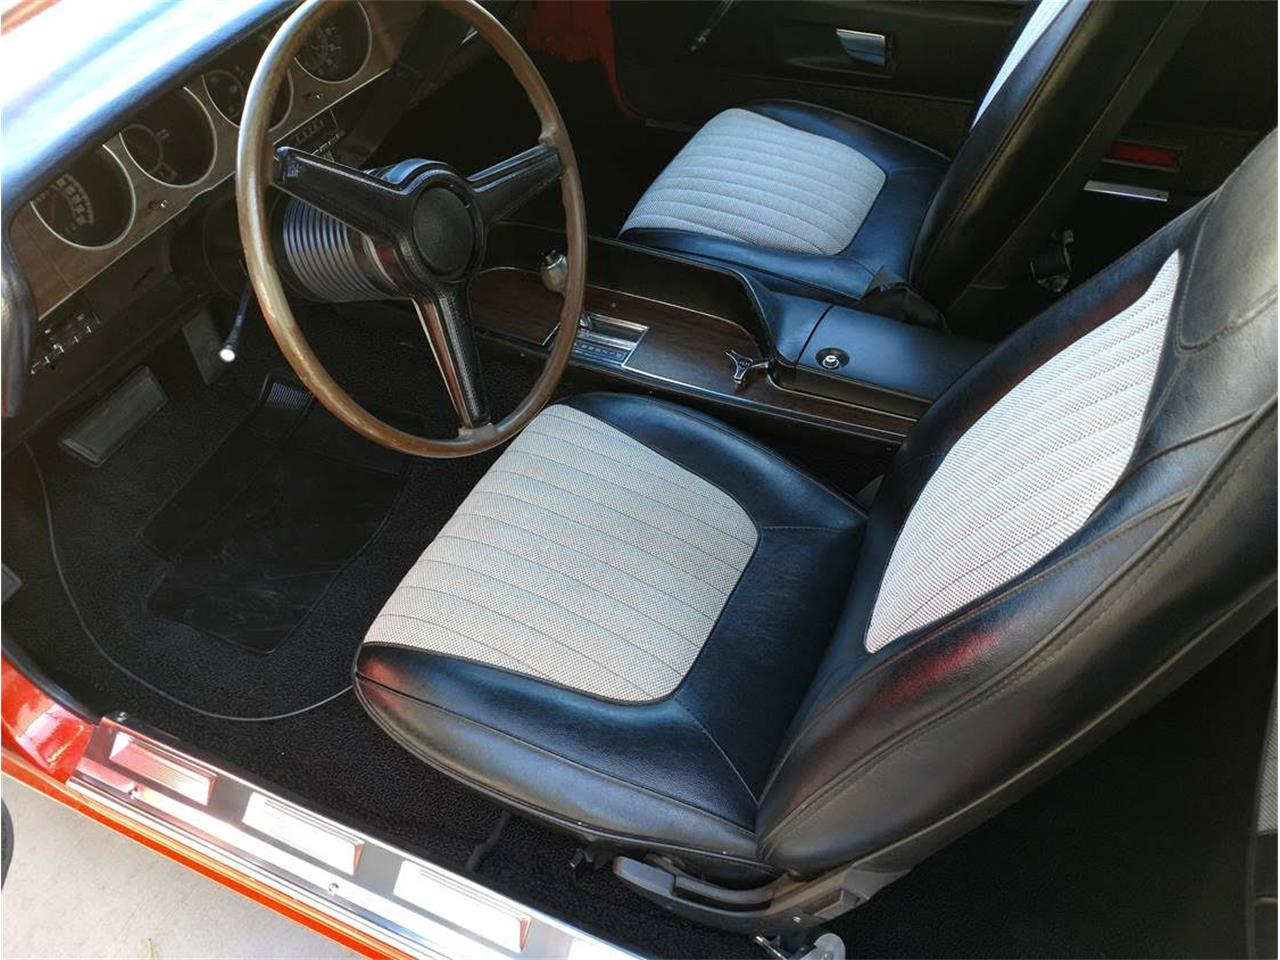 Large Picture of 1970 Dodge Challenger R/T located in Idaho - $65,000.00 Offered by a Private Seller - Q3RQ